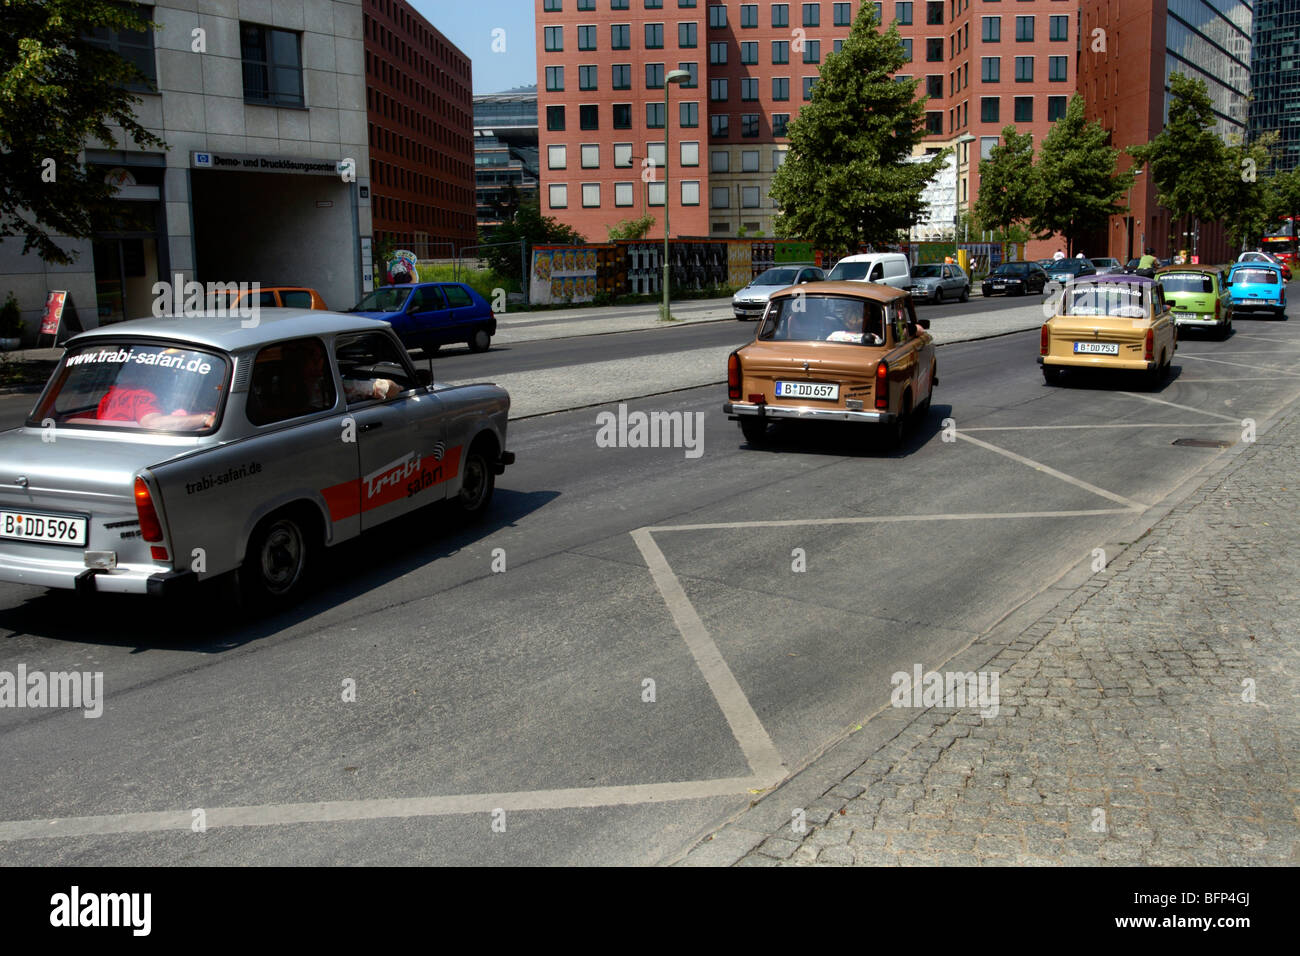 Trabant Cars In Berlin Germany Stock Photo Royalty Free Image